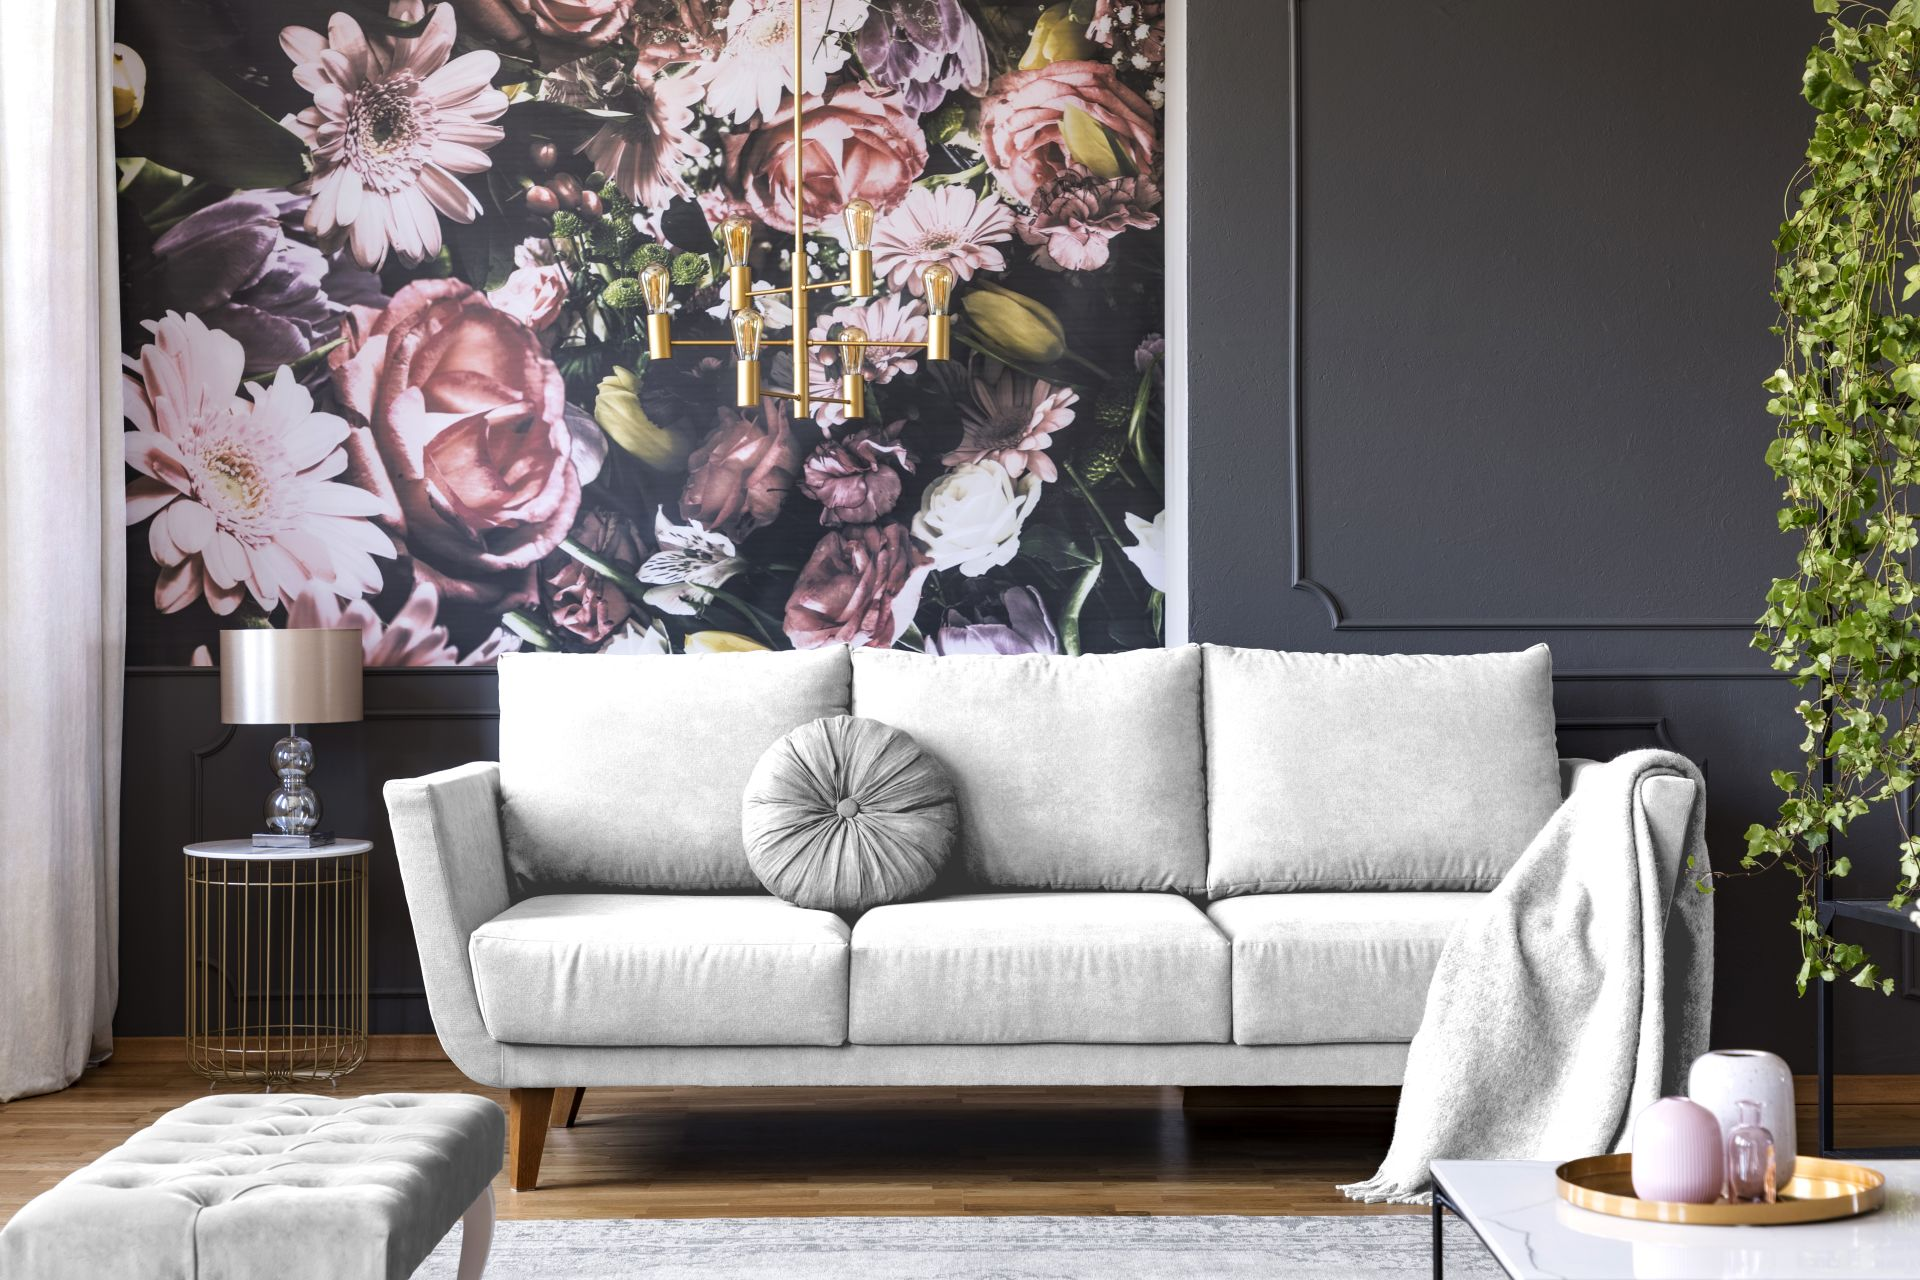 How to Use Black Paint in Your Home